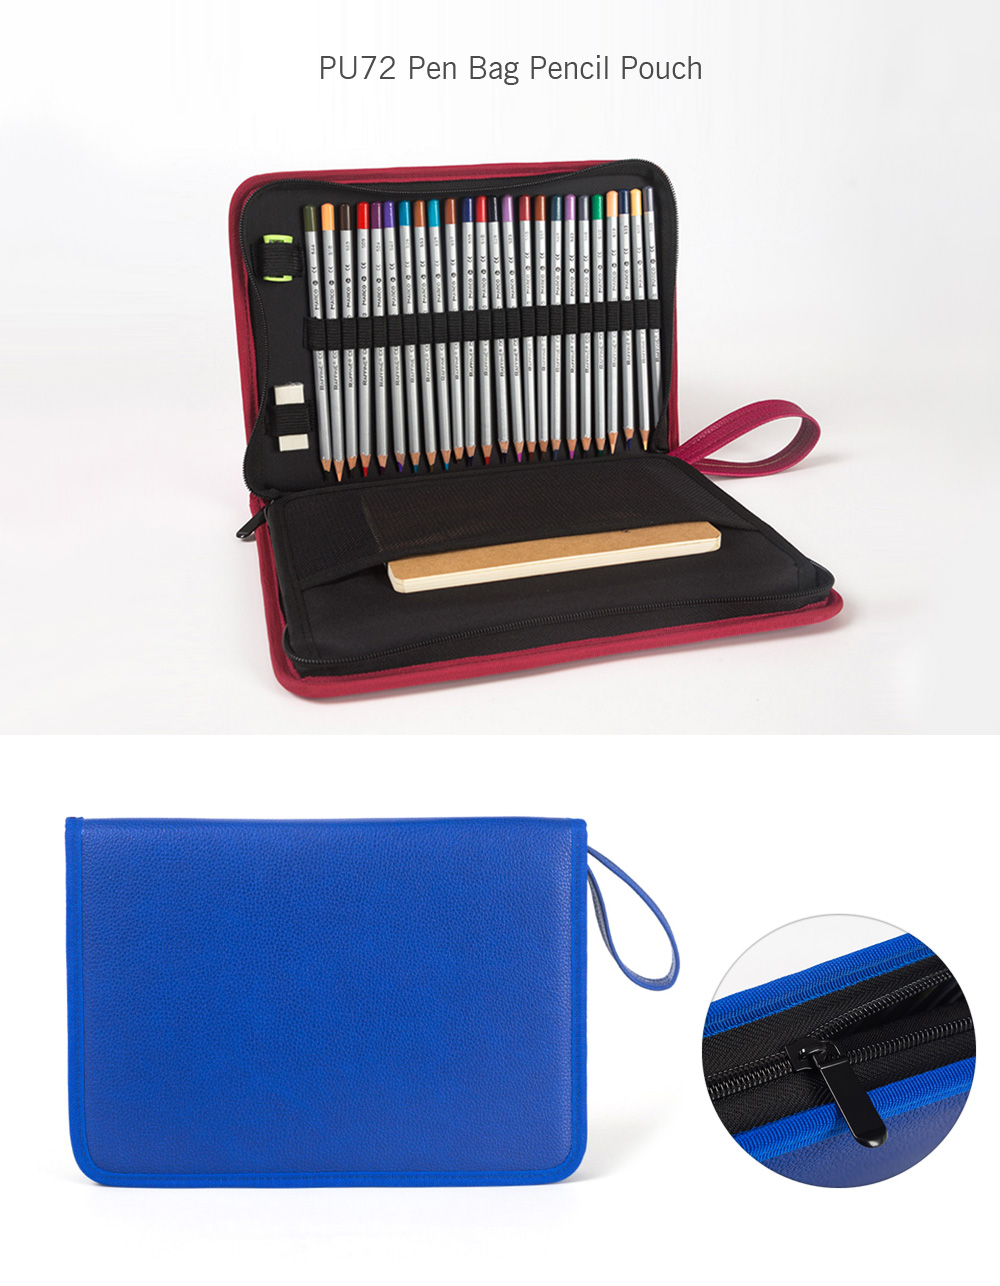 PU72 Pen Bag Pencil Pouch with Big Capacity